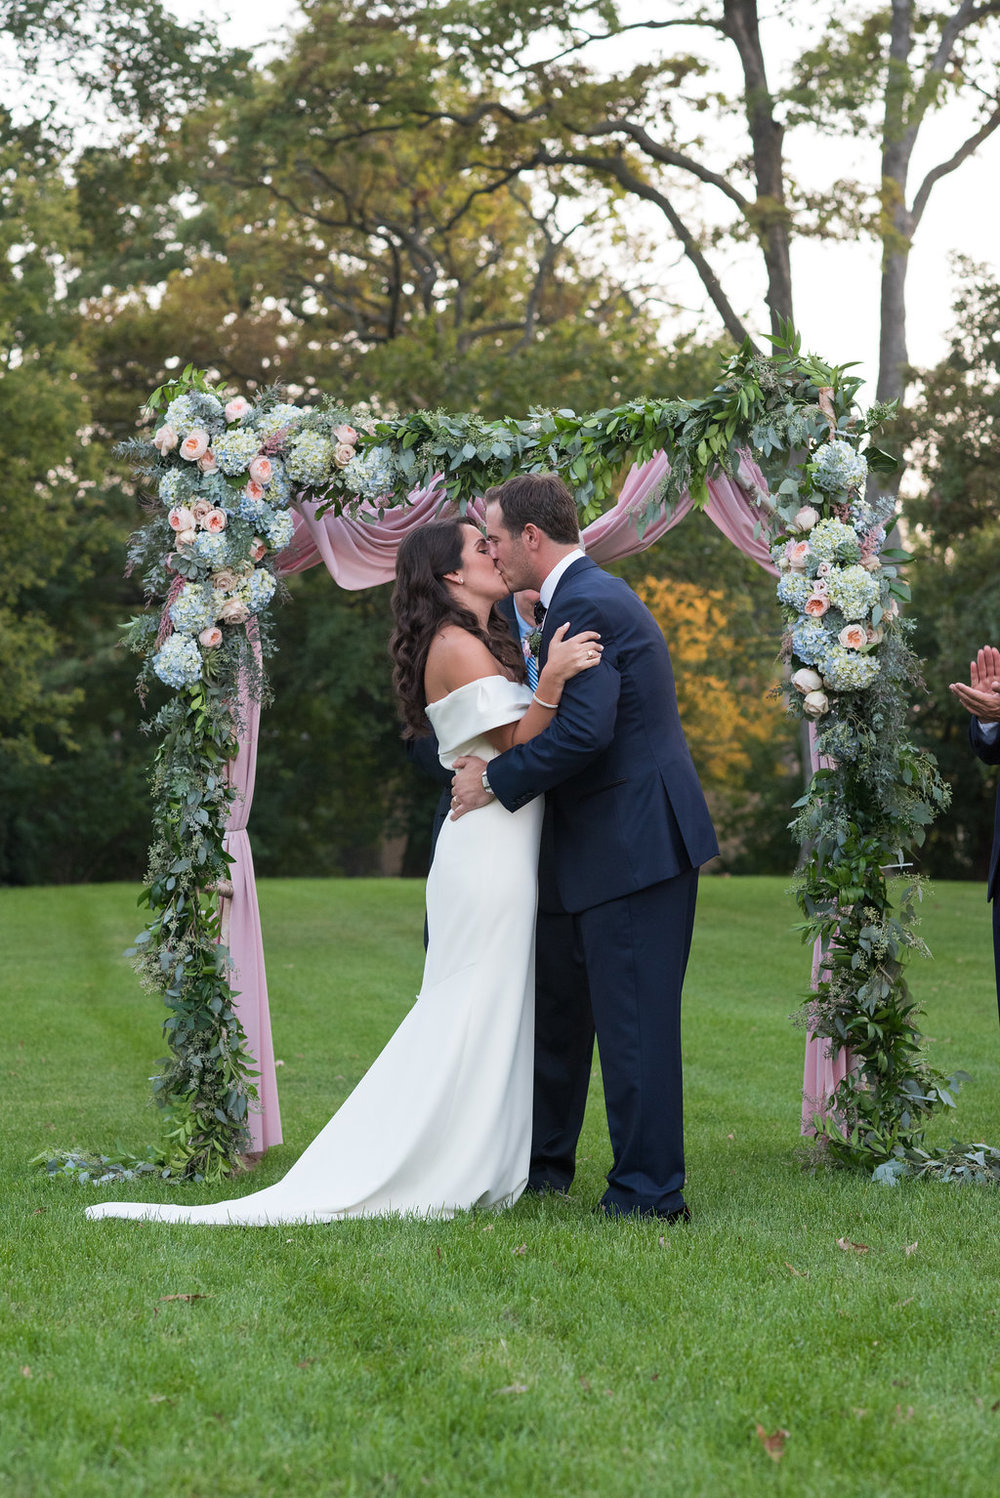 HighlandPark-Wedding-Flower-Arch.jpeg